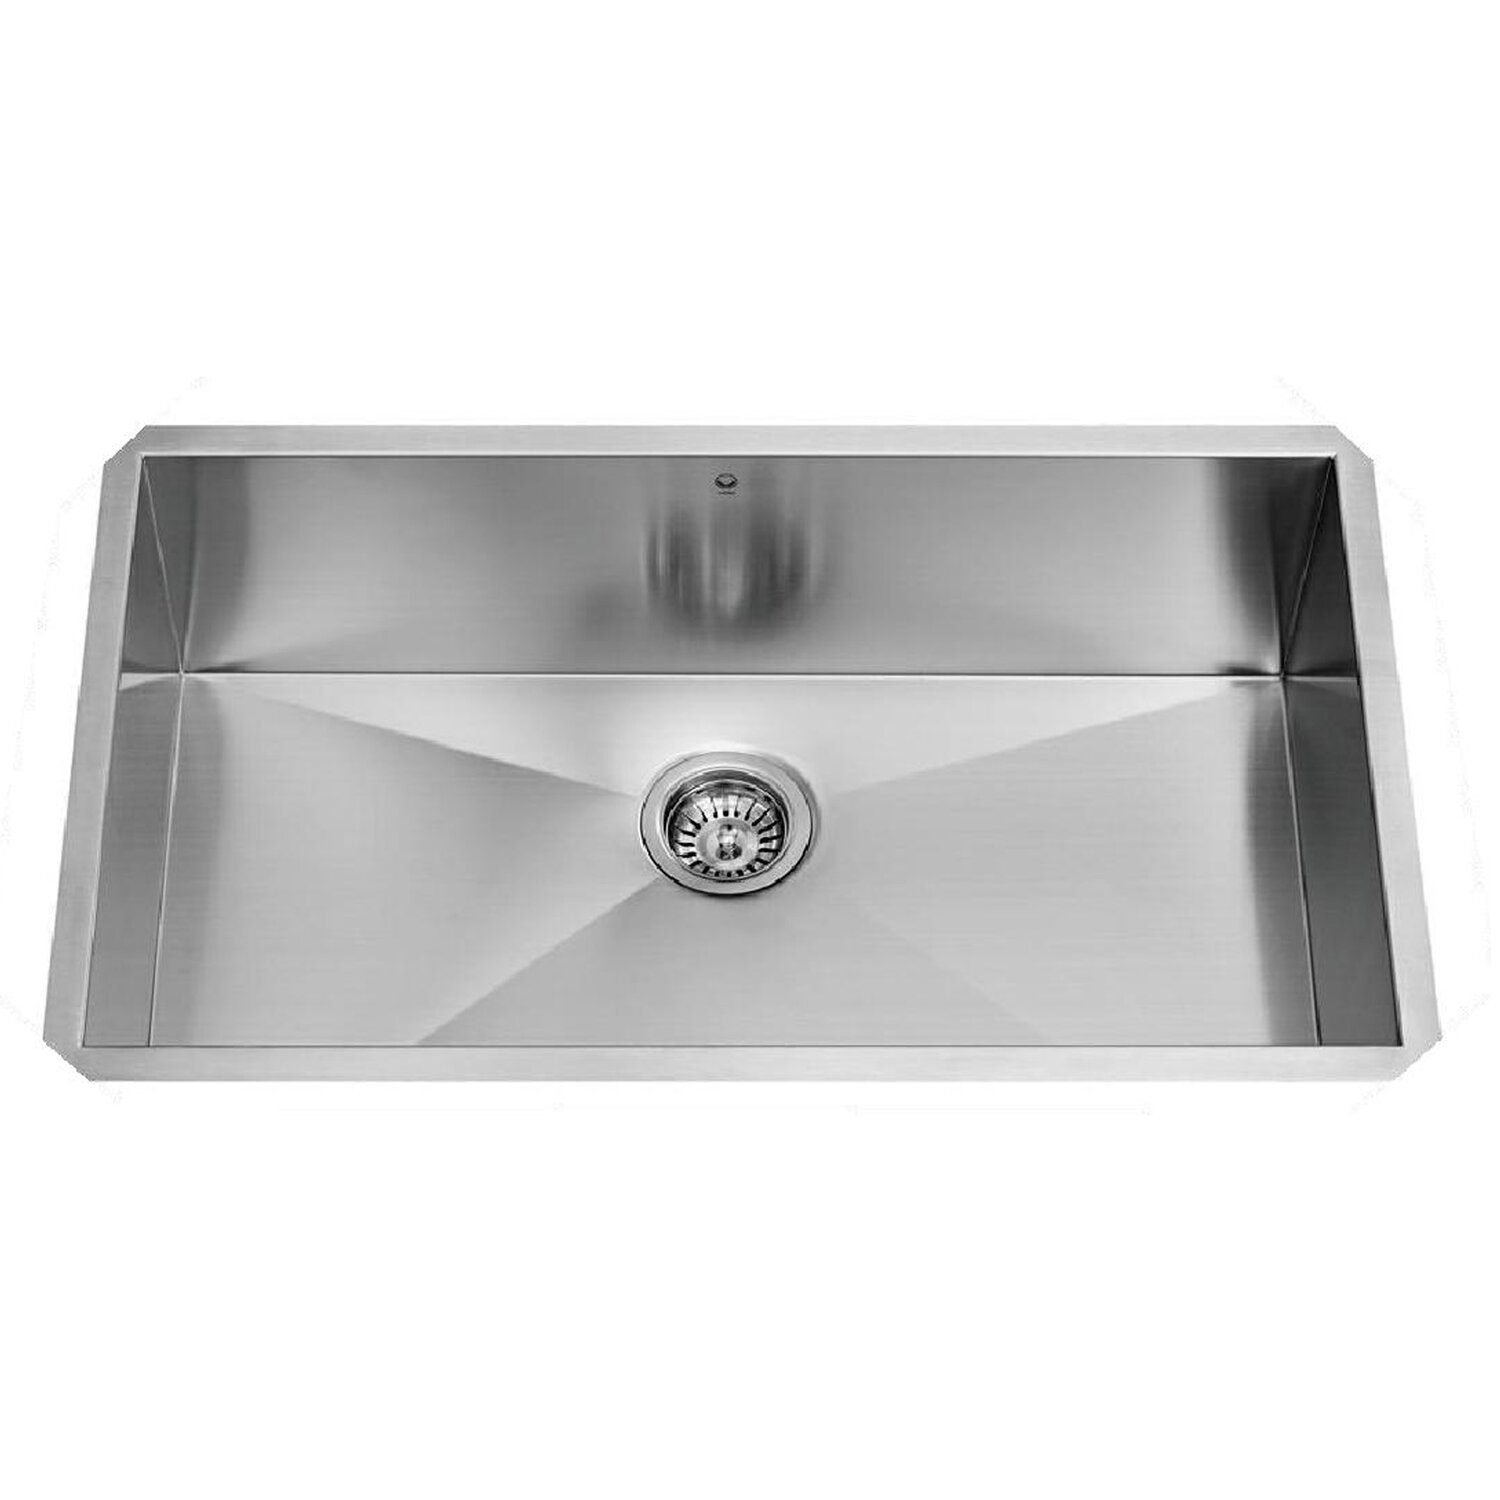 Vigo 30 X 19 Undermount Single Bowl 16 Gauge Stainless Steel Kitchen Sink Reviews Wayfair